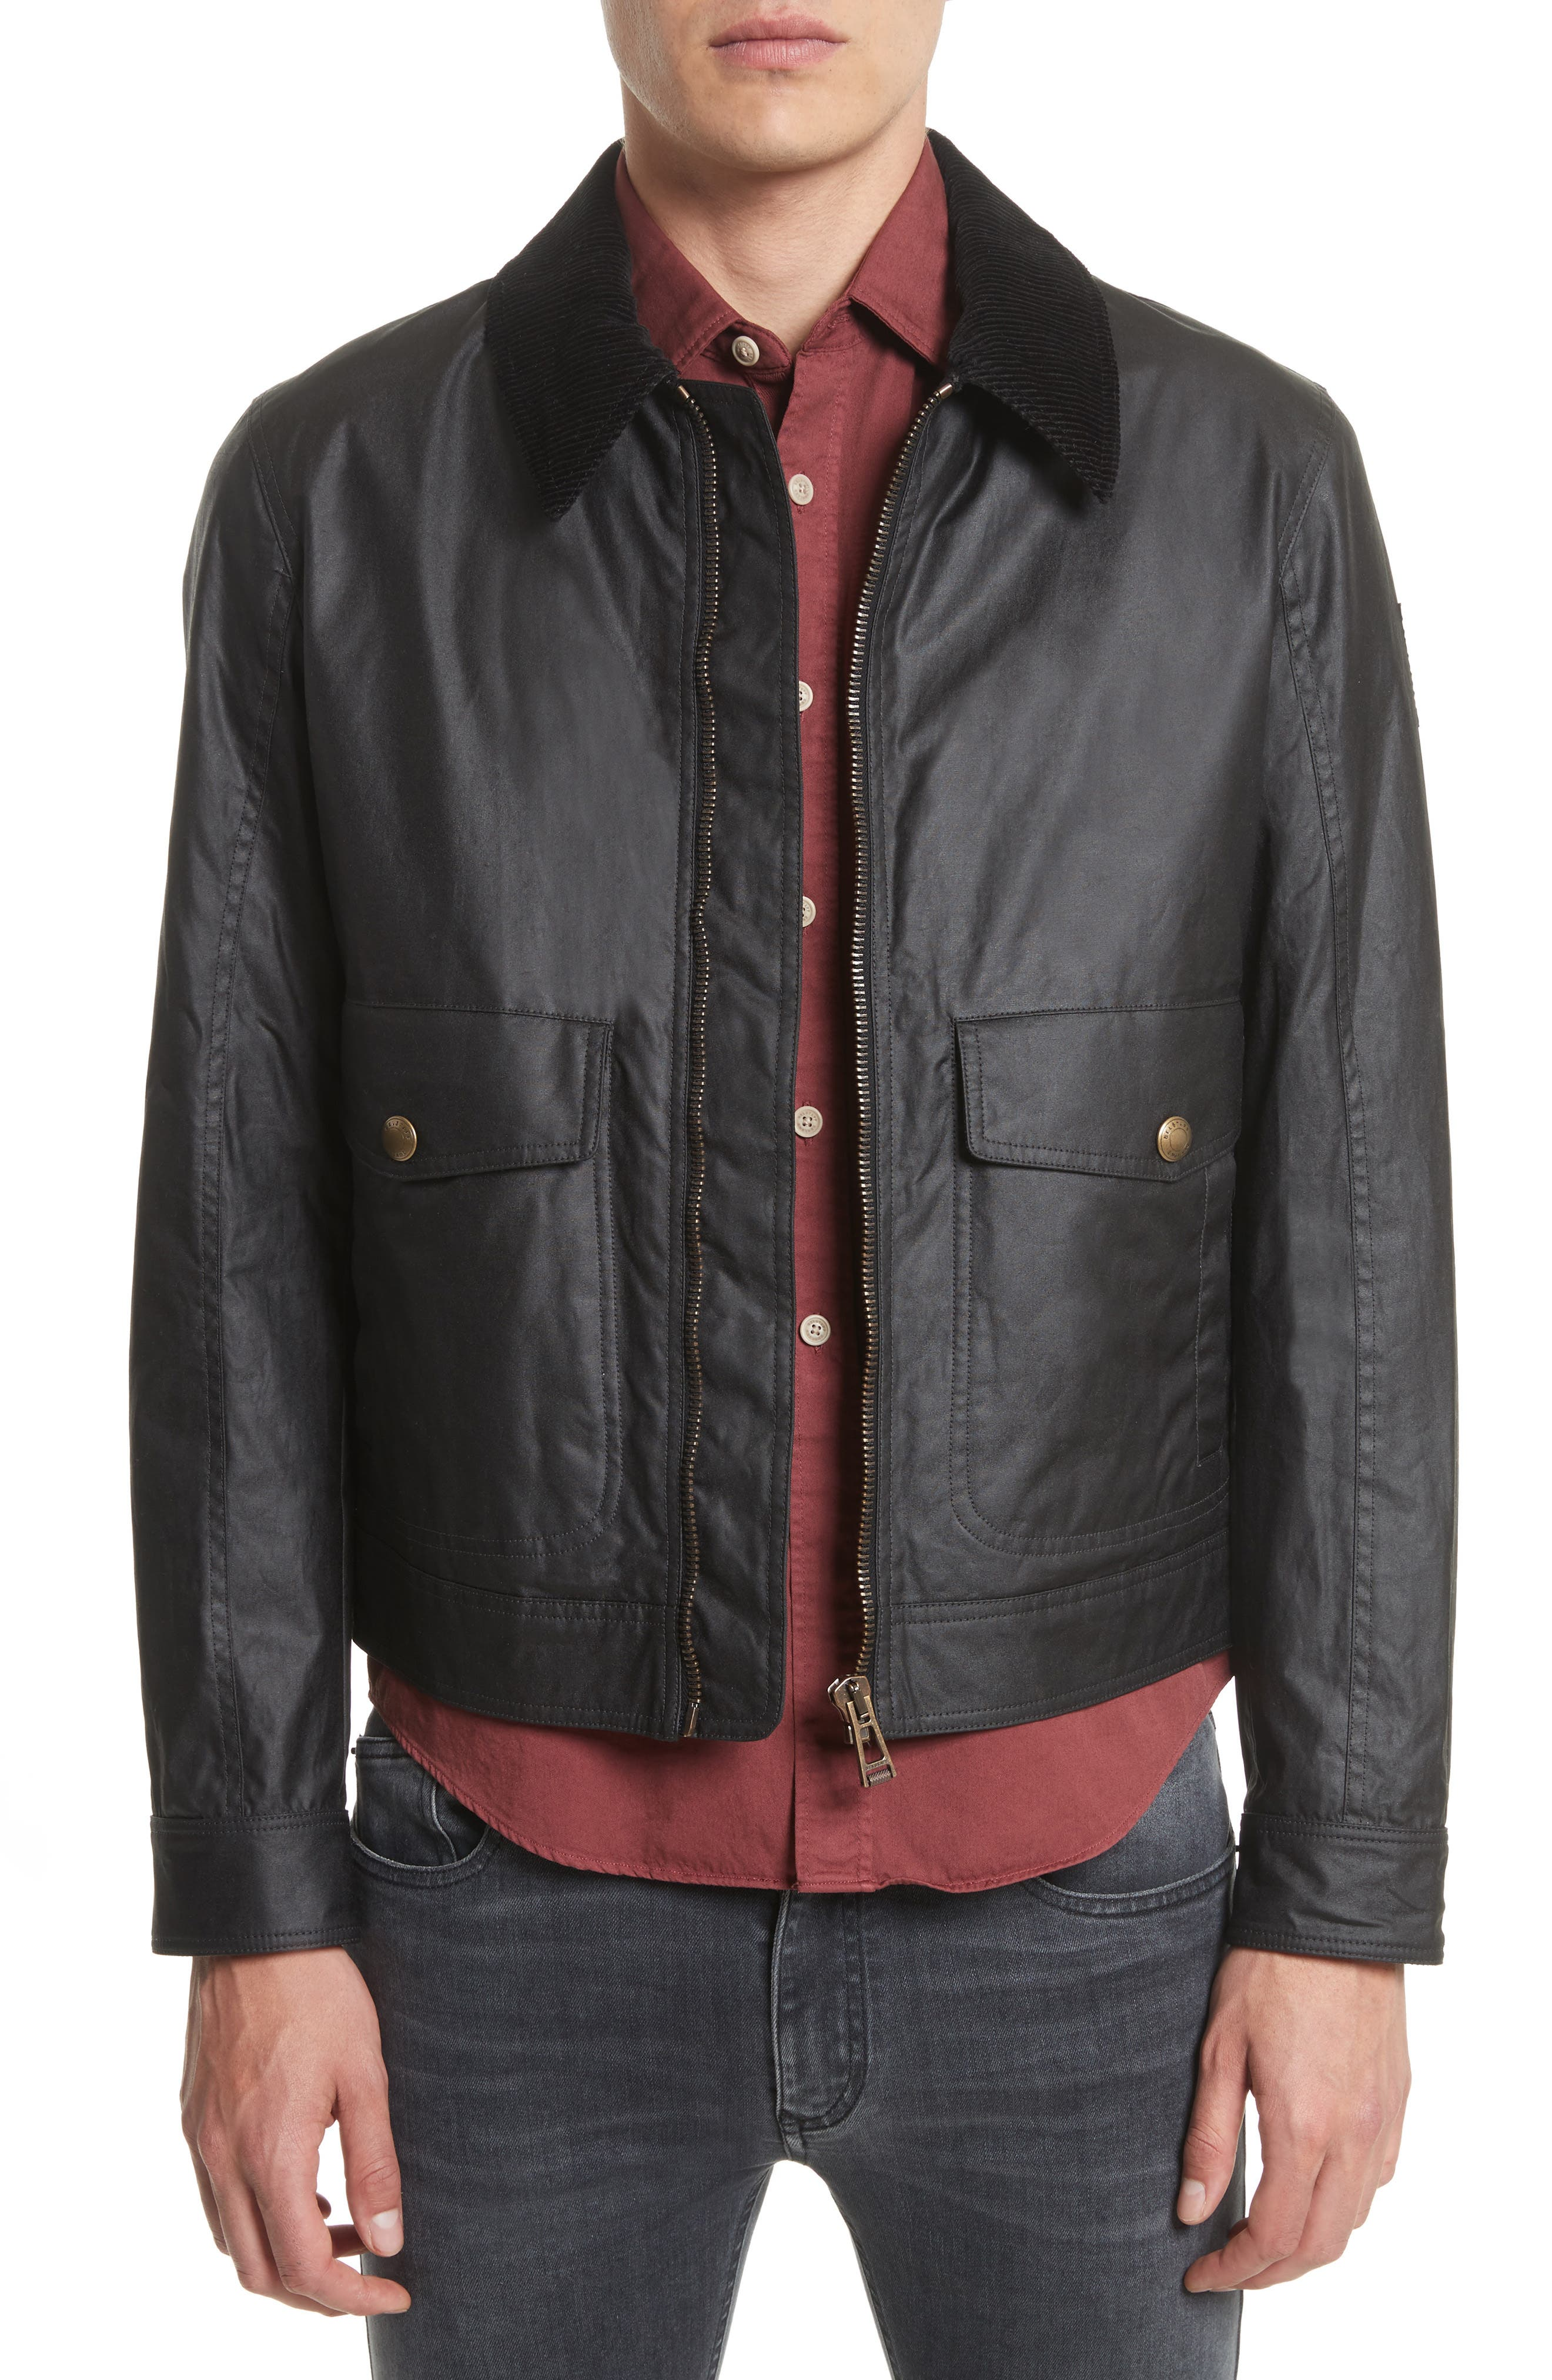 Mentmore Waxed Cotton Jacket,                         Main,                         color, 001